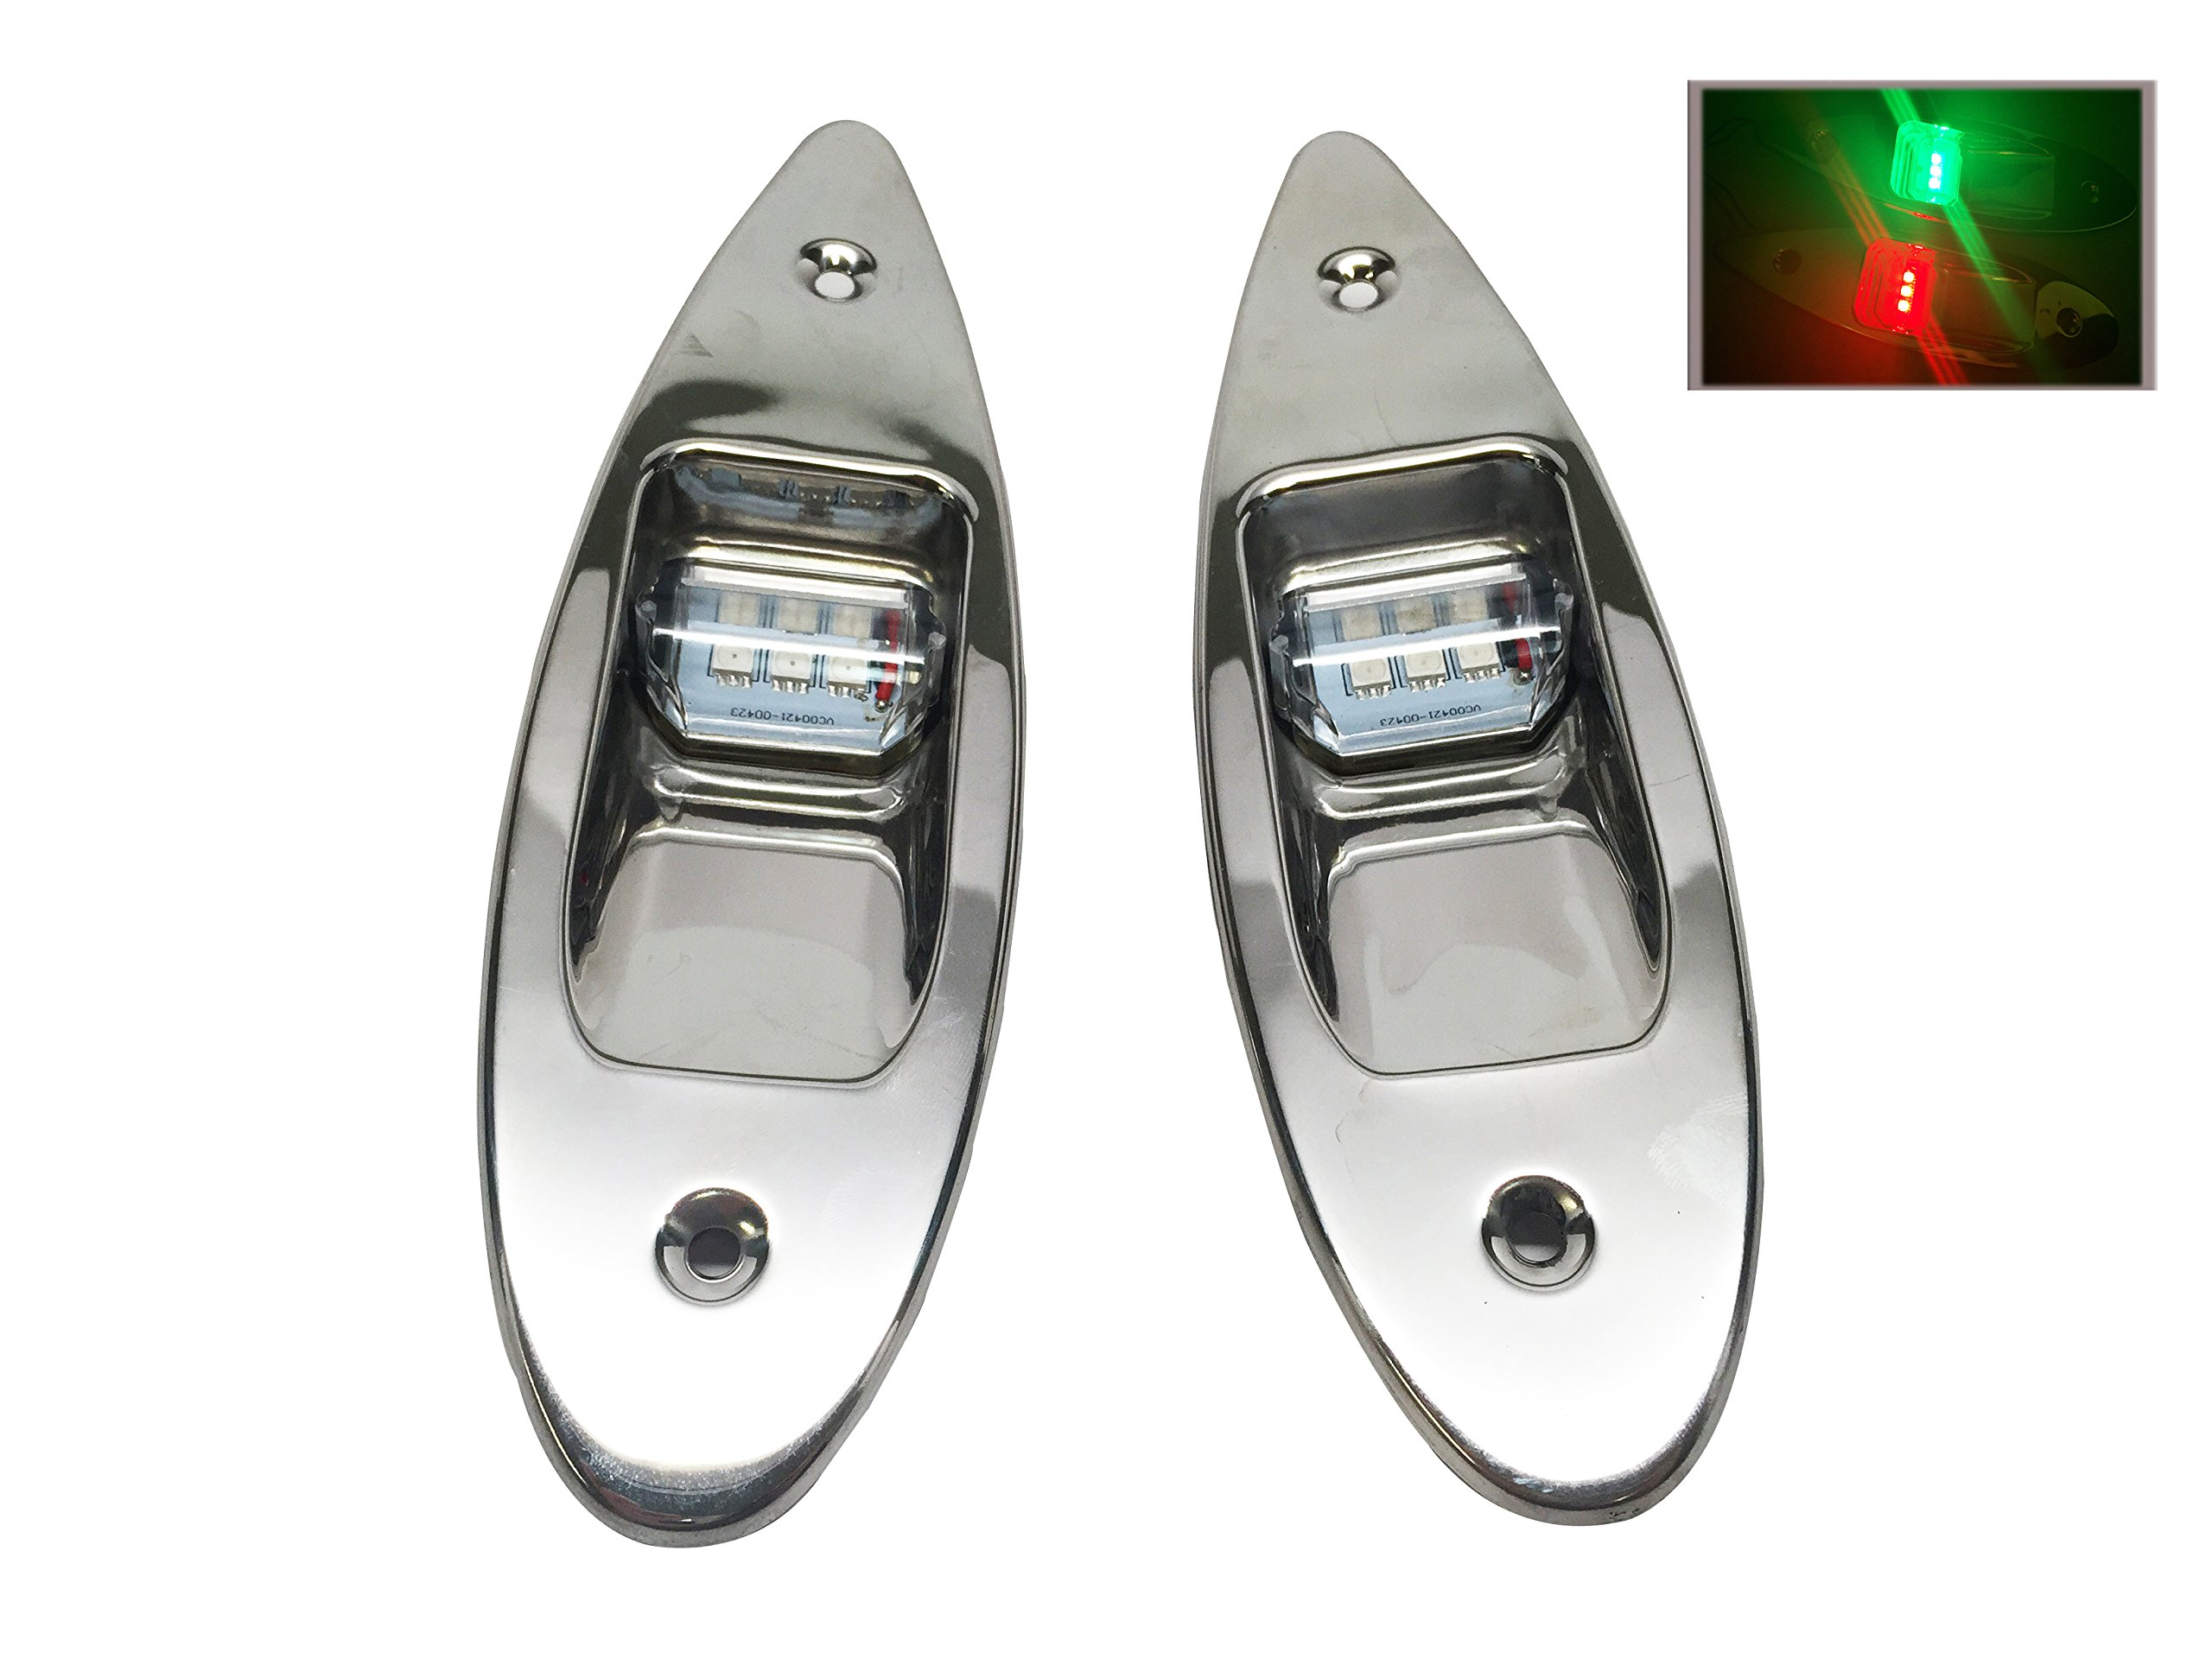 Pactrade Marine Boat Navigational Pair of LED Side Tear Drop Lights SS Vertical Mount, 12V by Pactrade Marine